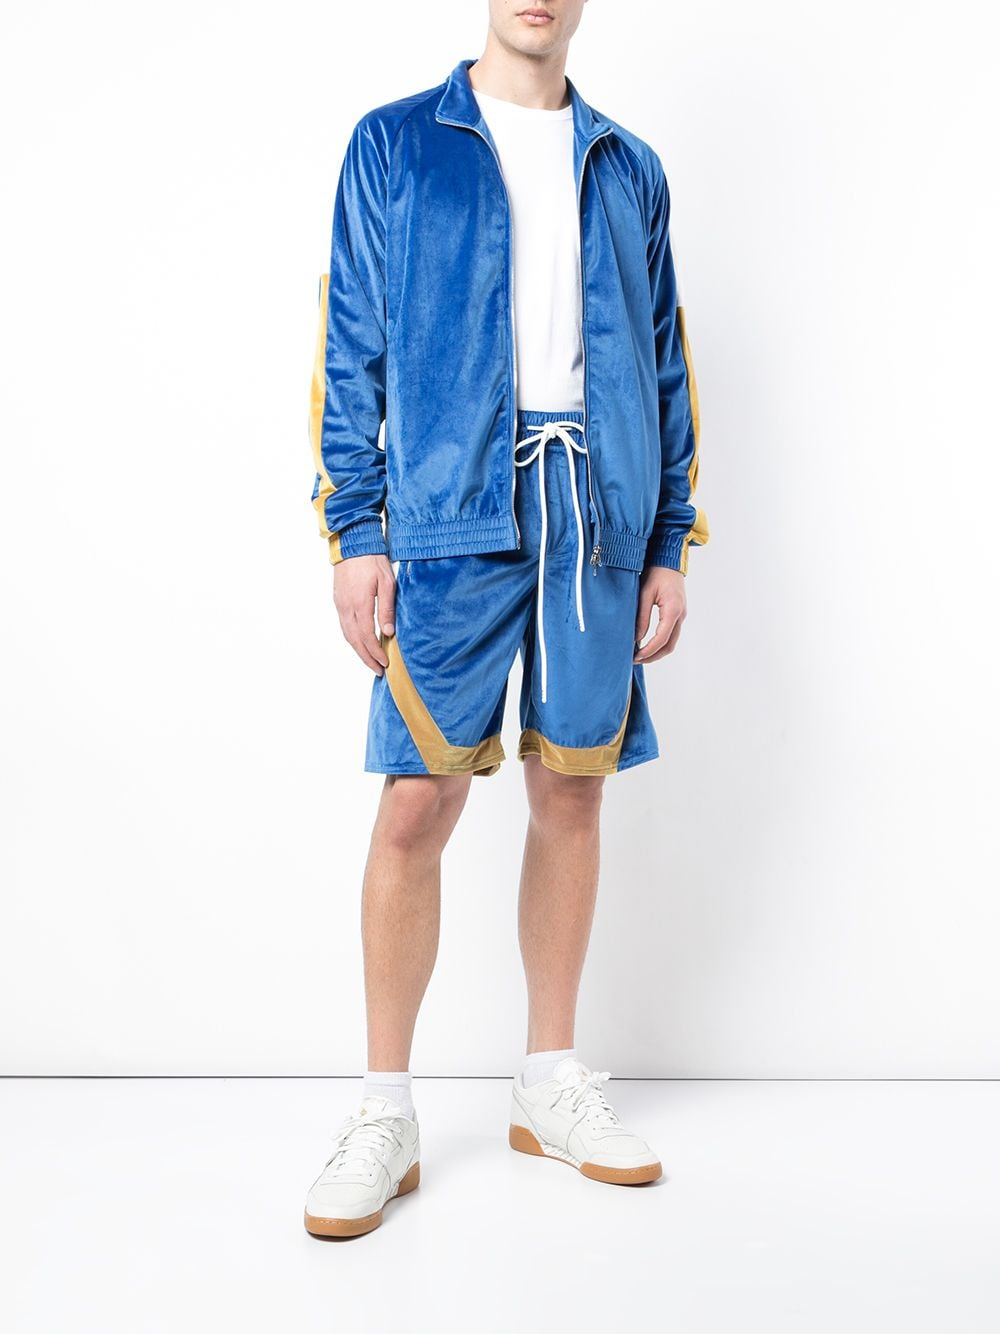 ALL STAR JACKET (BLUE/YELLOW)